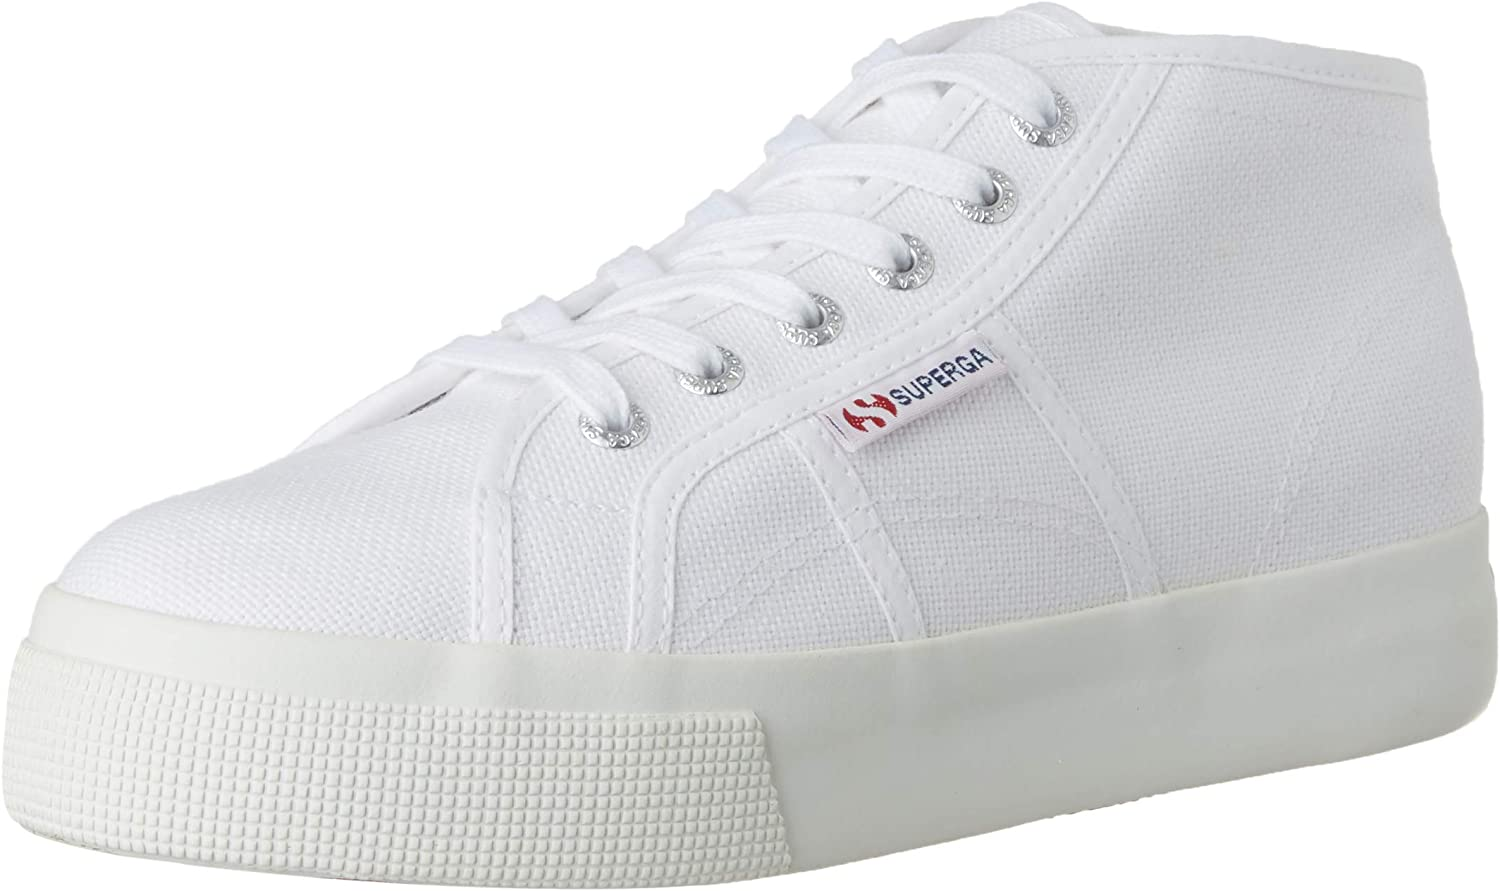 Superga Men's Free shipping Low-Top 2021 autumn and winter new Shoes Gymnastics